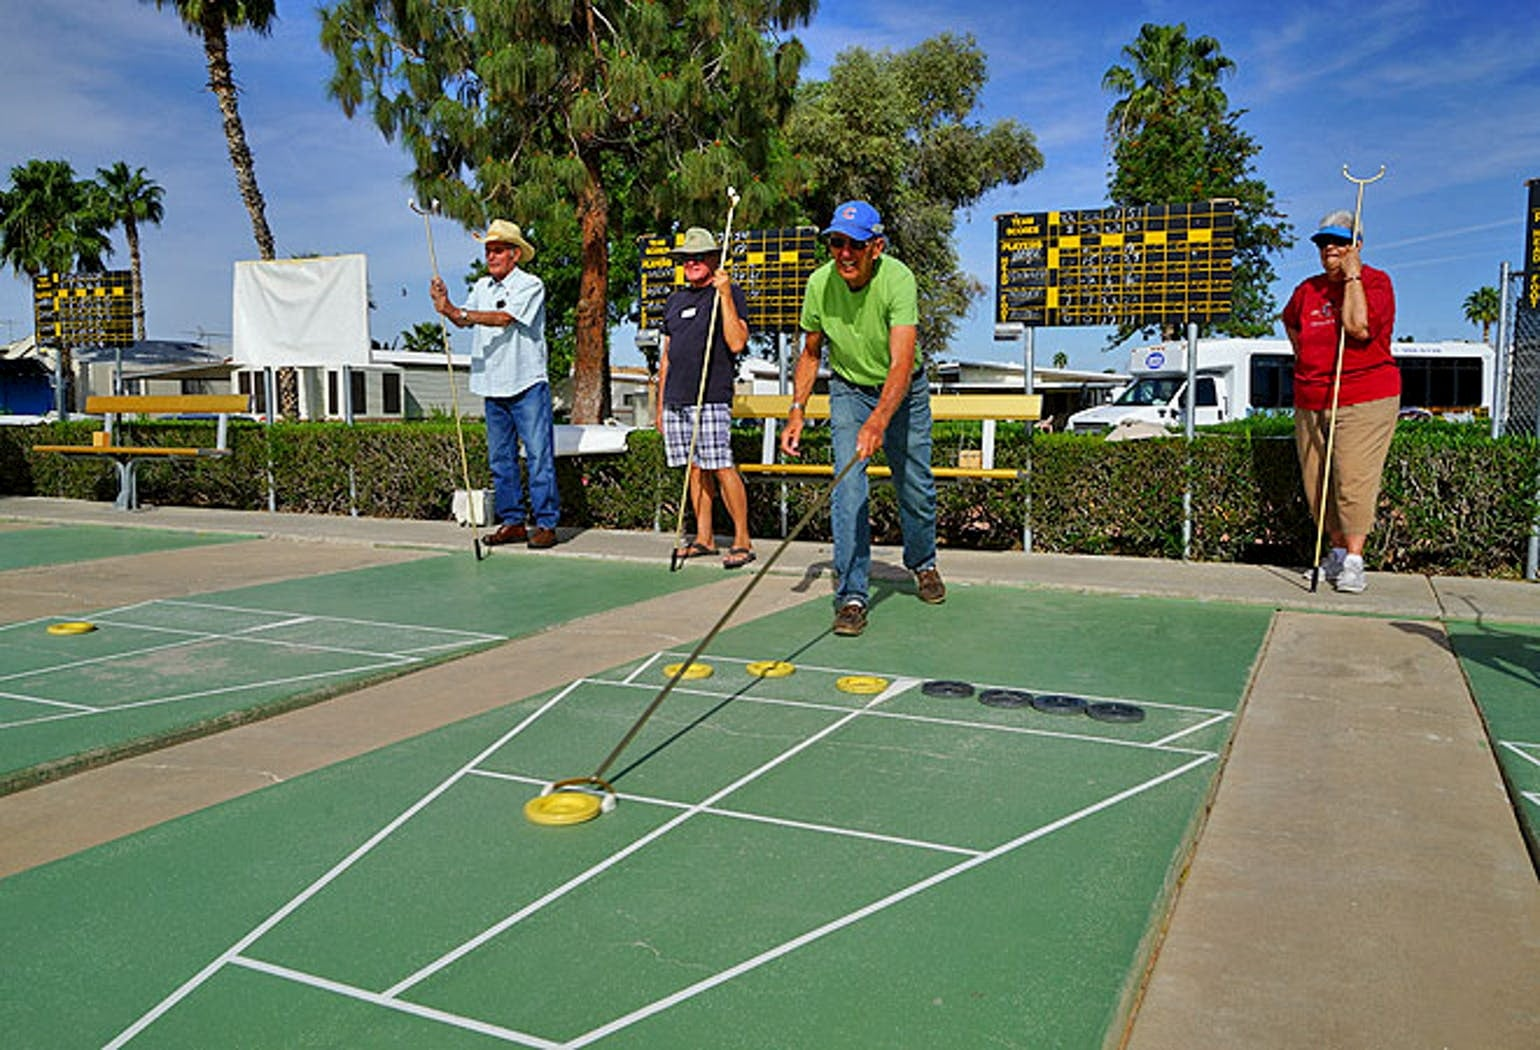 Elderly retirees playing shuffleboard outdoors surrounded by palm trees.